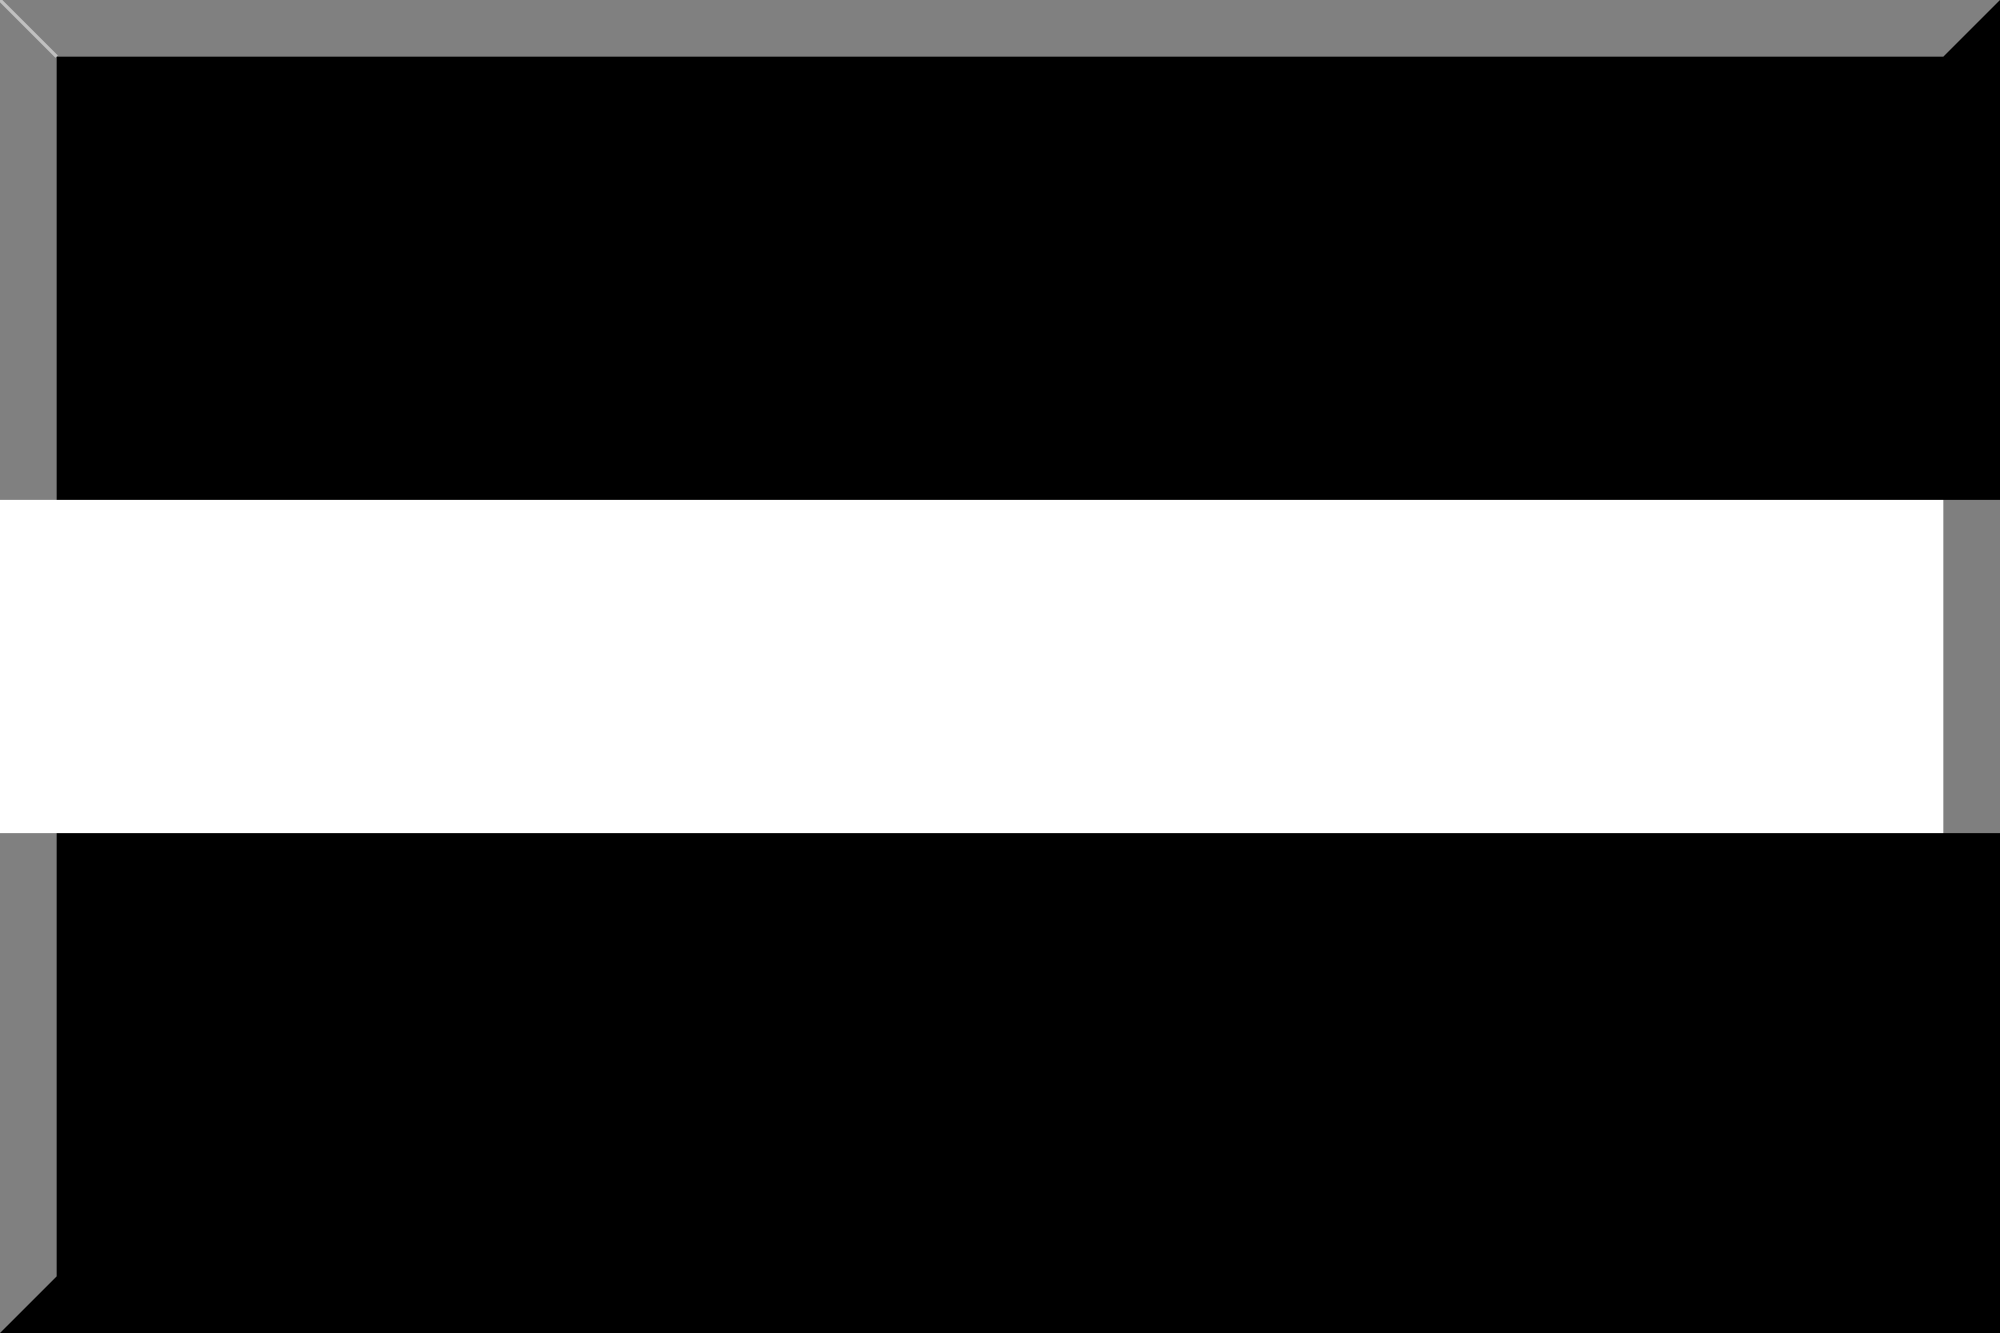 File:600px Black with White stripe.svg - Wikimedia Commons